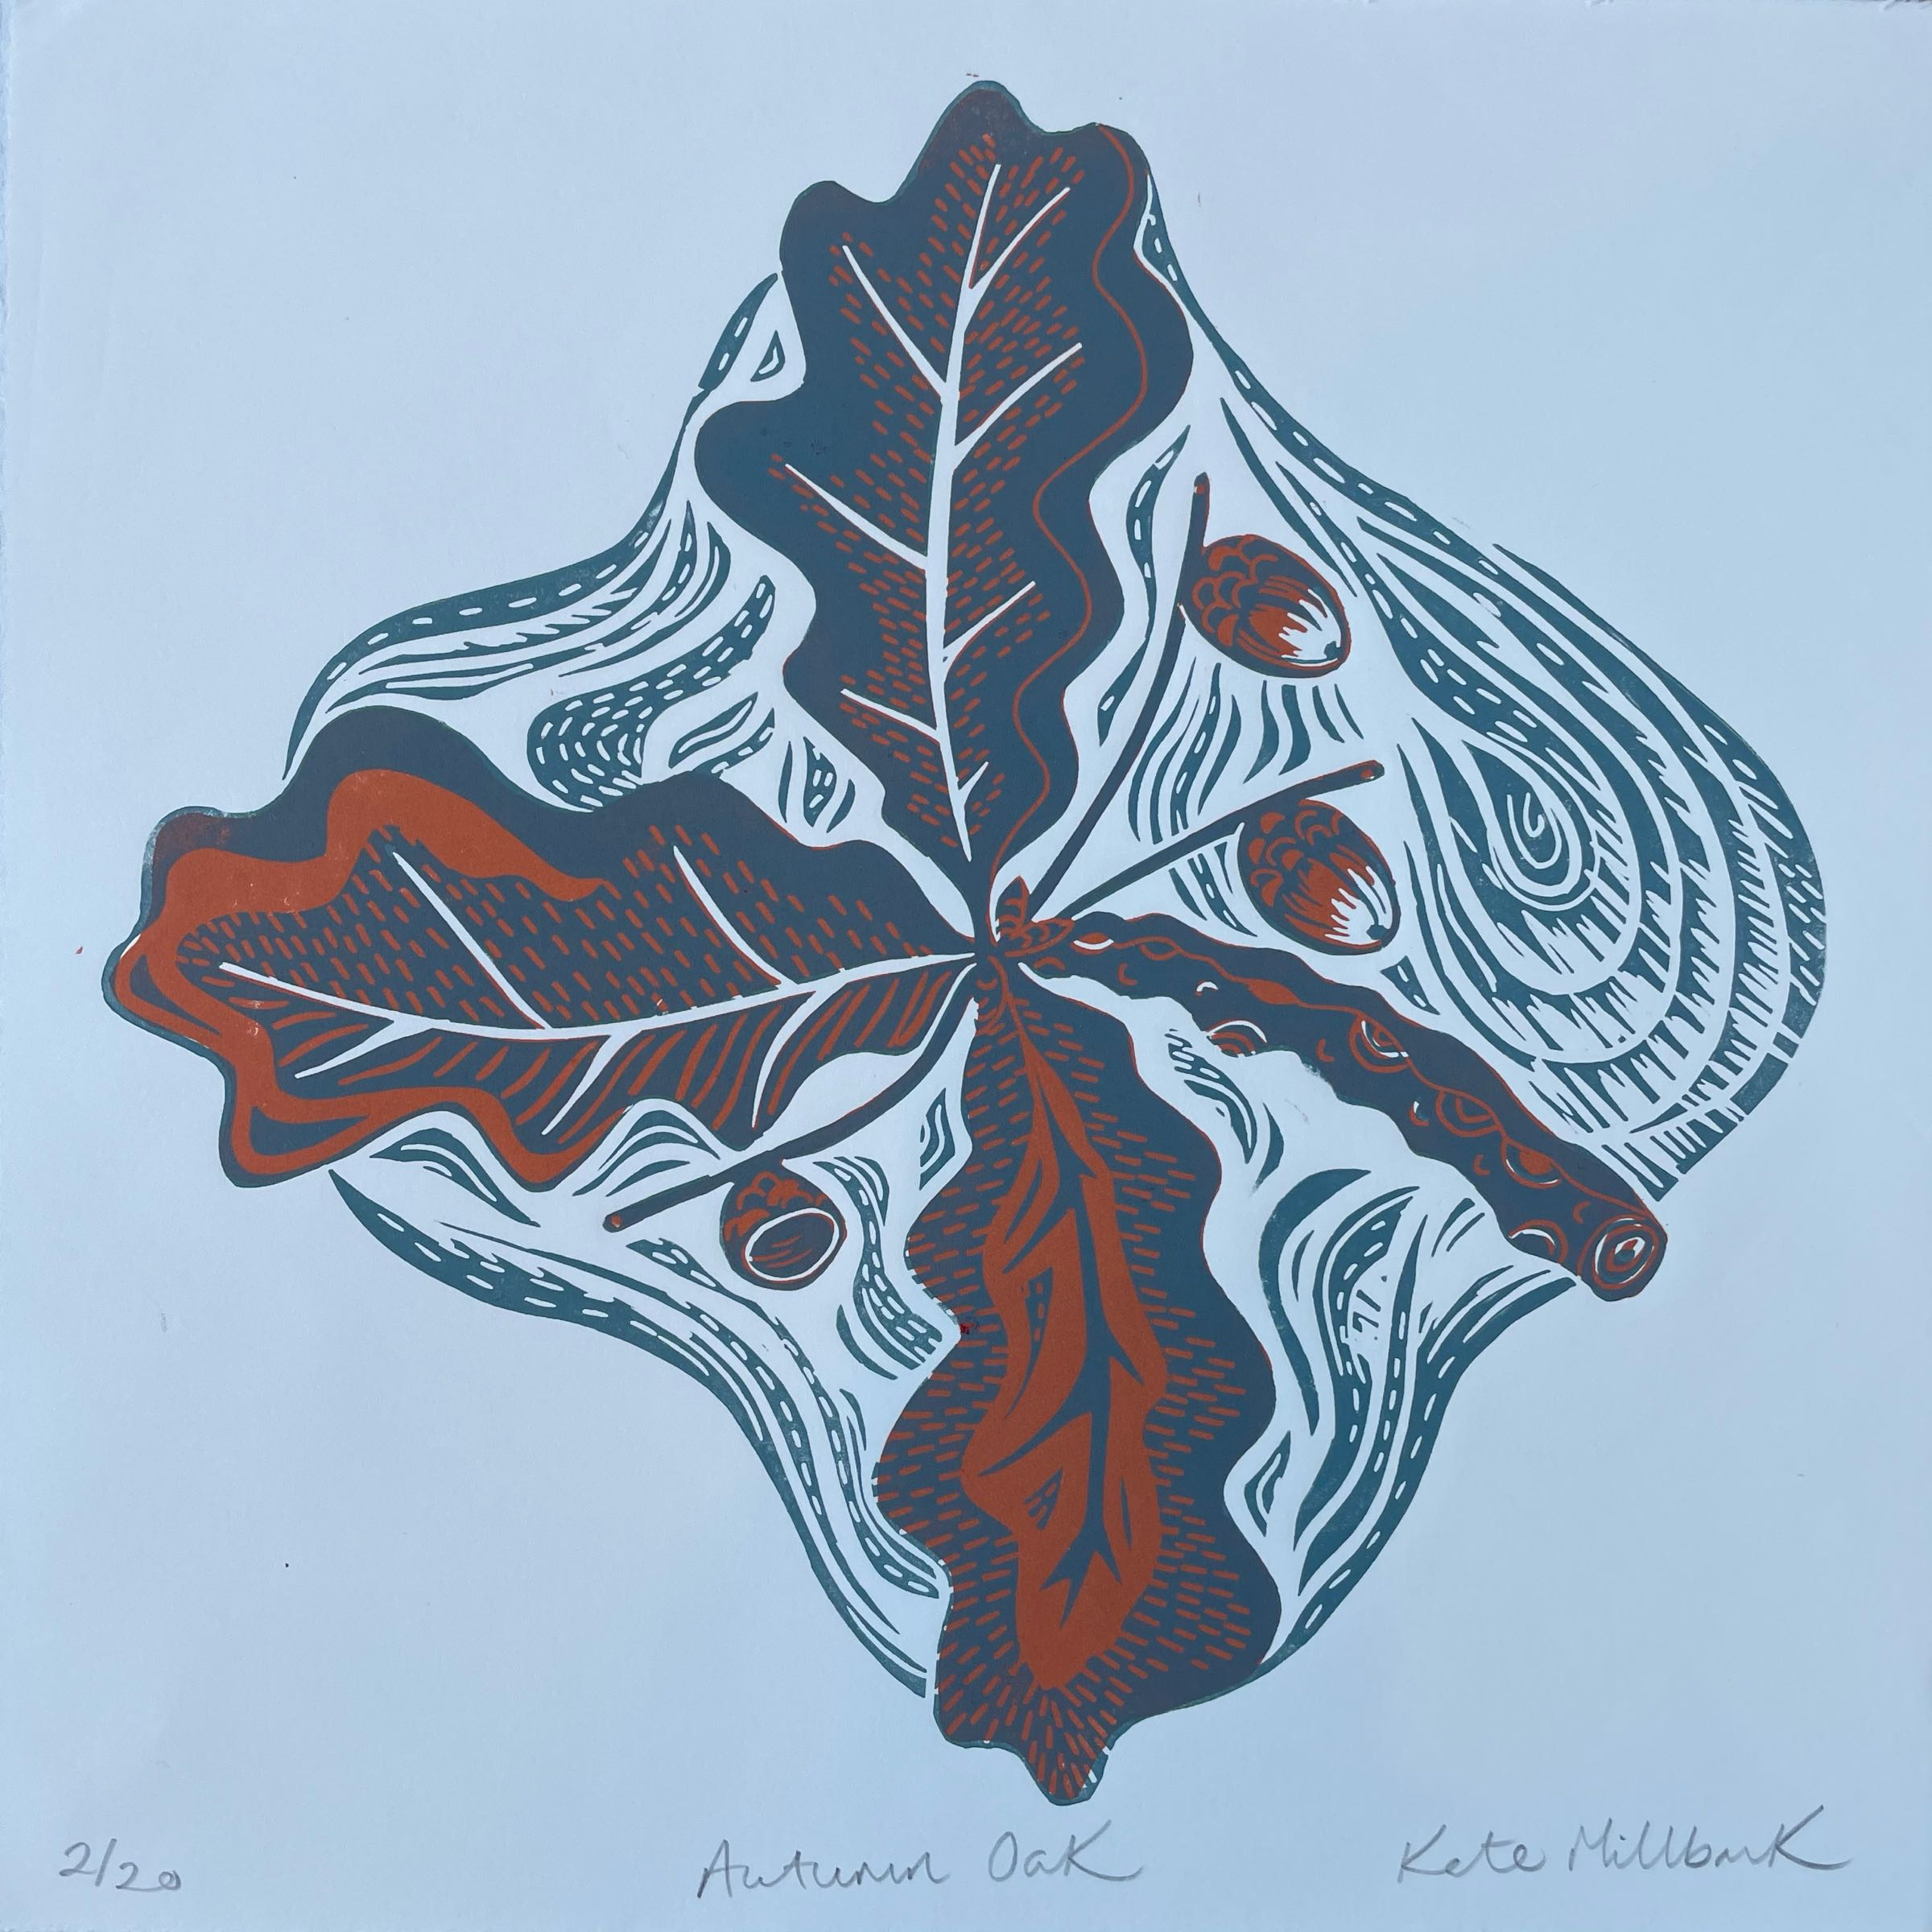 Autumn Oak Two Colour Lino Print by Kate Millbank